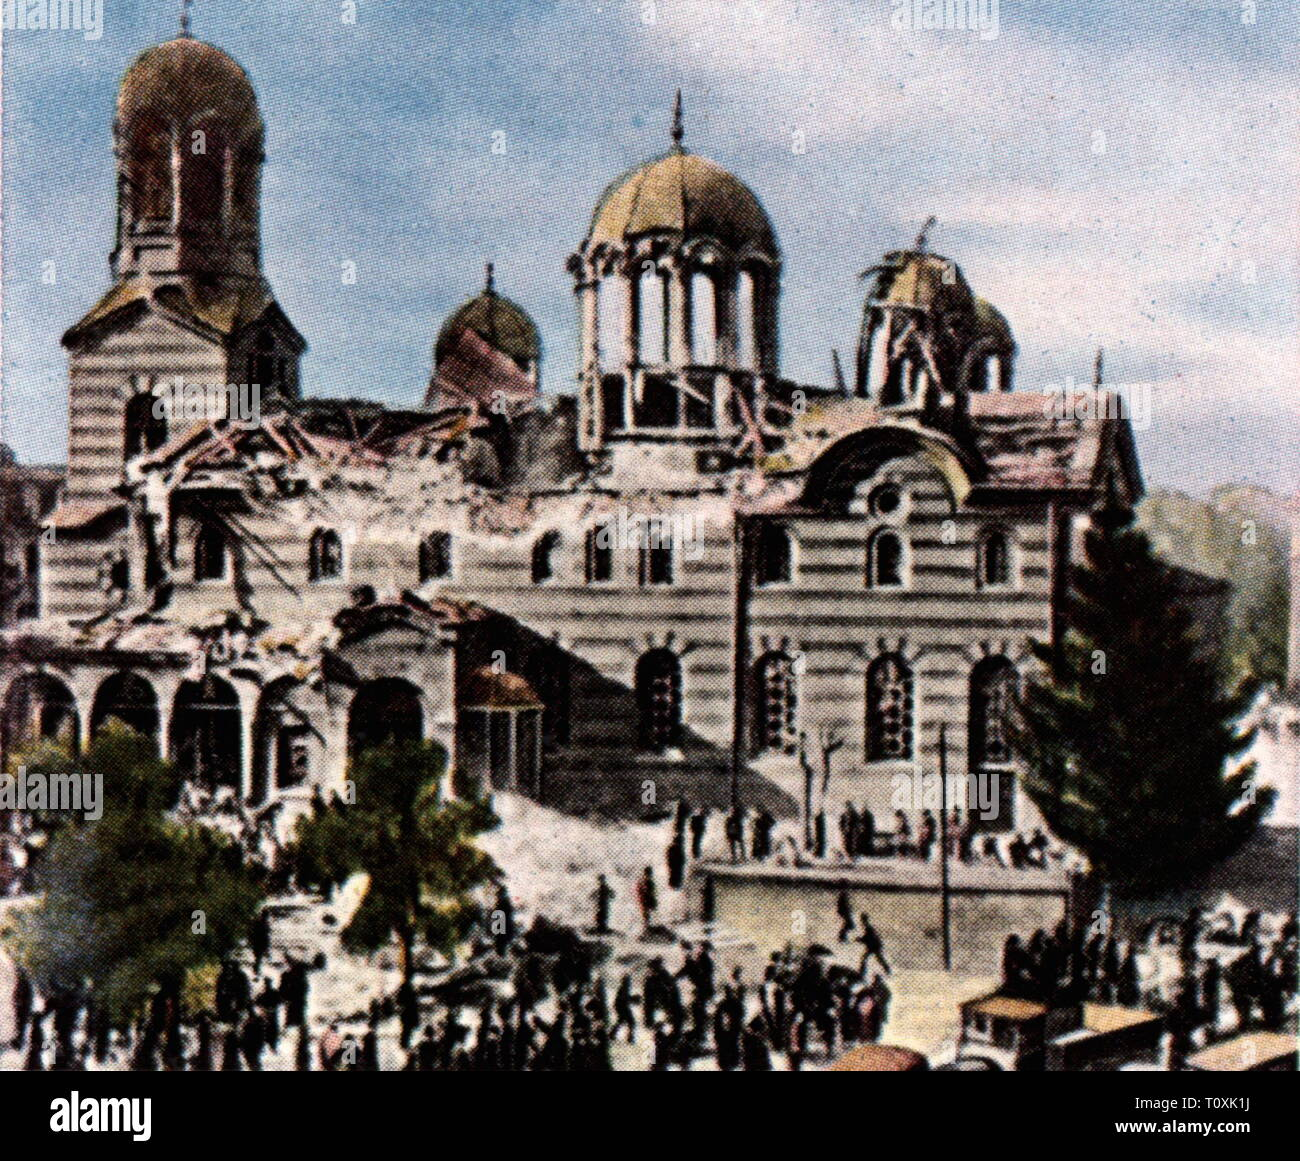 justice, serious crime, terrorism, assaults, bomb attack on the cathedral Sveta Nedelya, Sofija, 16.4.1925, by Bulgarian communists with support of the Communist International (Comintern), coloured photograph, cigarette card, series 'Die Nachkriegszeit', 1935, during the state funeral for general Constantine Georgiev, Communist International (Comintern), assassination attempt, attempted assassination, assassinate, leftist terror, terror, politics, policy, Bulgarian communist party (BCP), czardom Bulgaria, orthodox church, people, 1920s, 20th cent, Additional-Rights-Clearance-Info-Not-Available - Stock Image